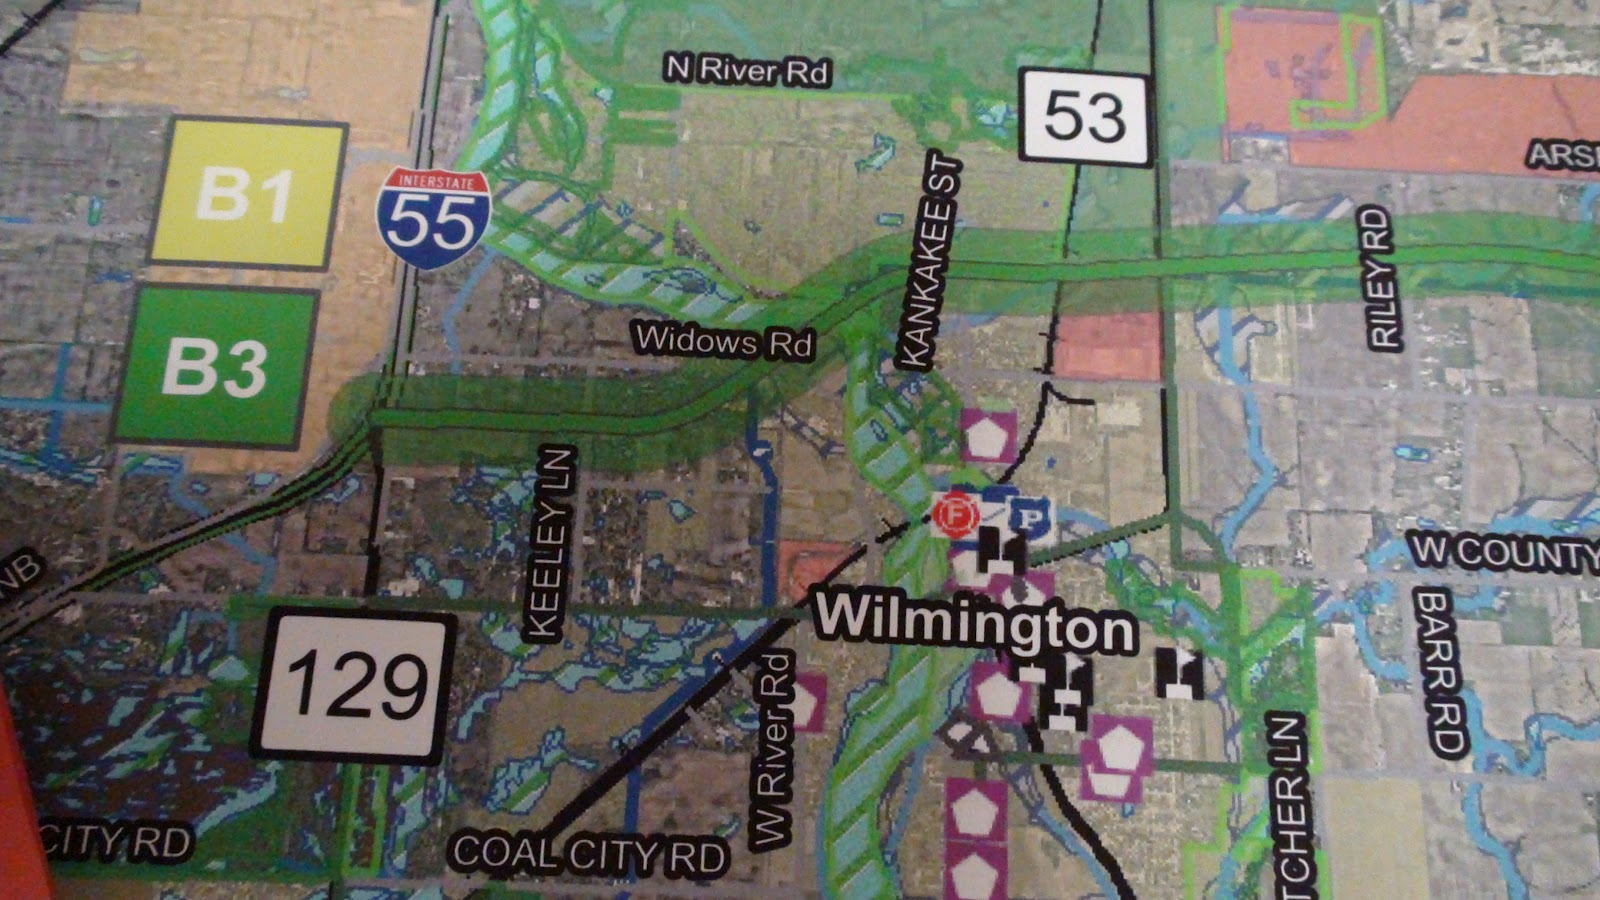 Will County News Illiana Expressway B3 Route Discussed At